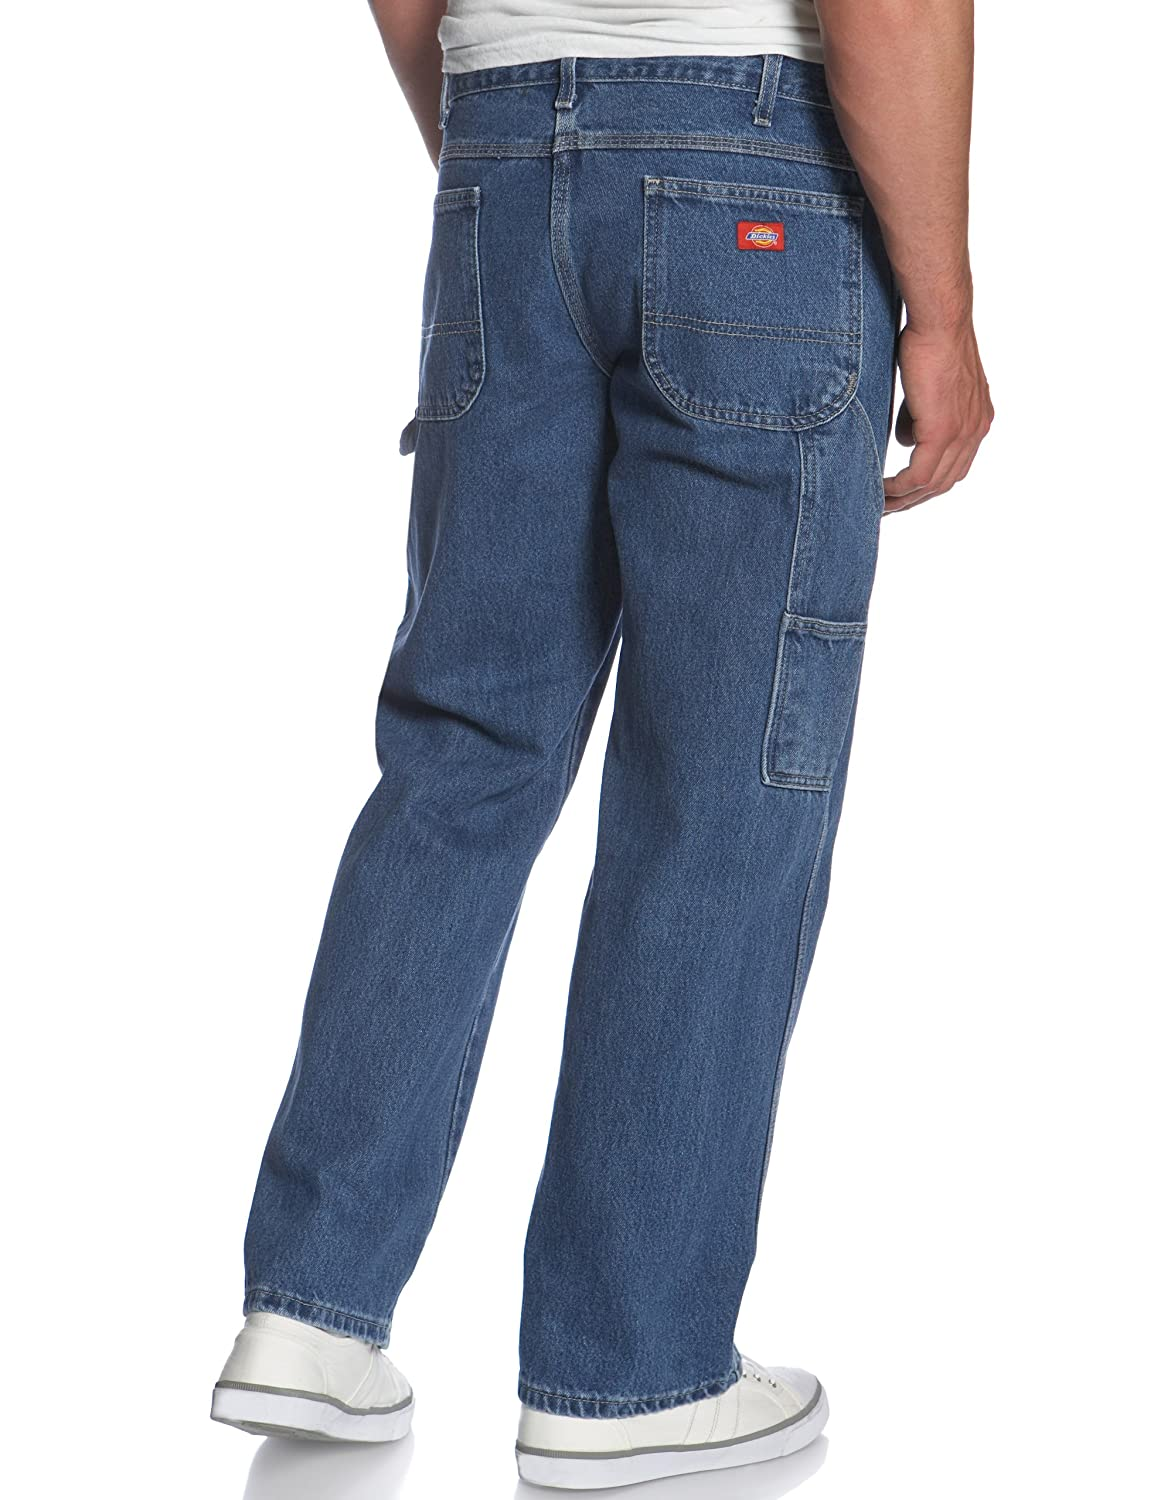 59d1c2003d8 Amazon.com  Dickies Men s Big Tall Loose-Fit Carpenter Jean  Clothing